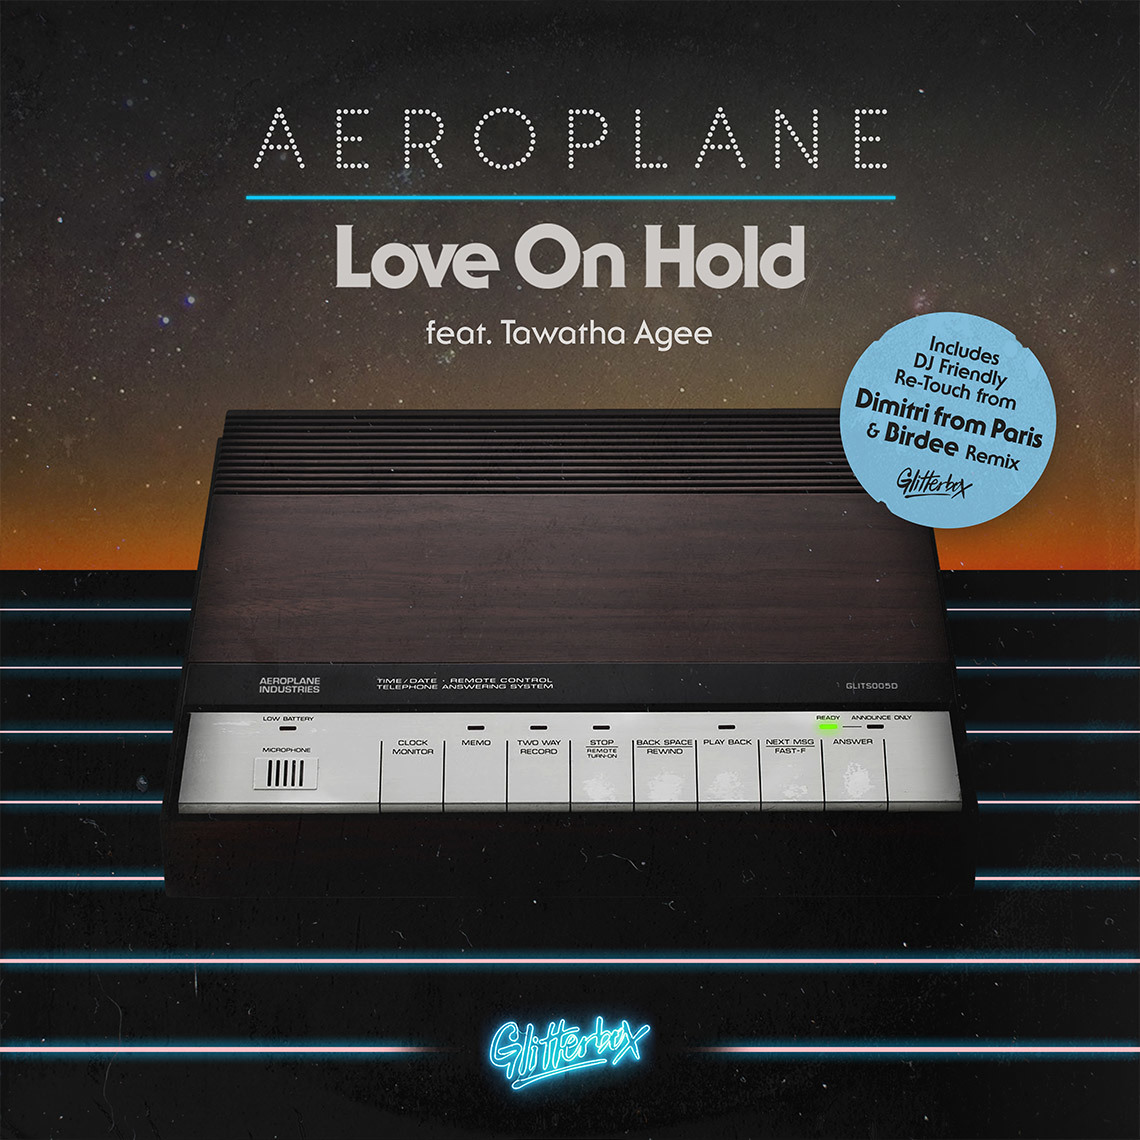 Aeroplane loveonhold remixes